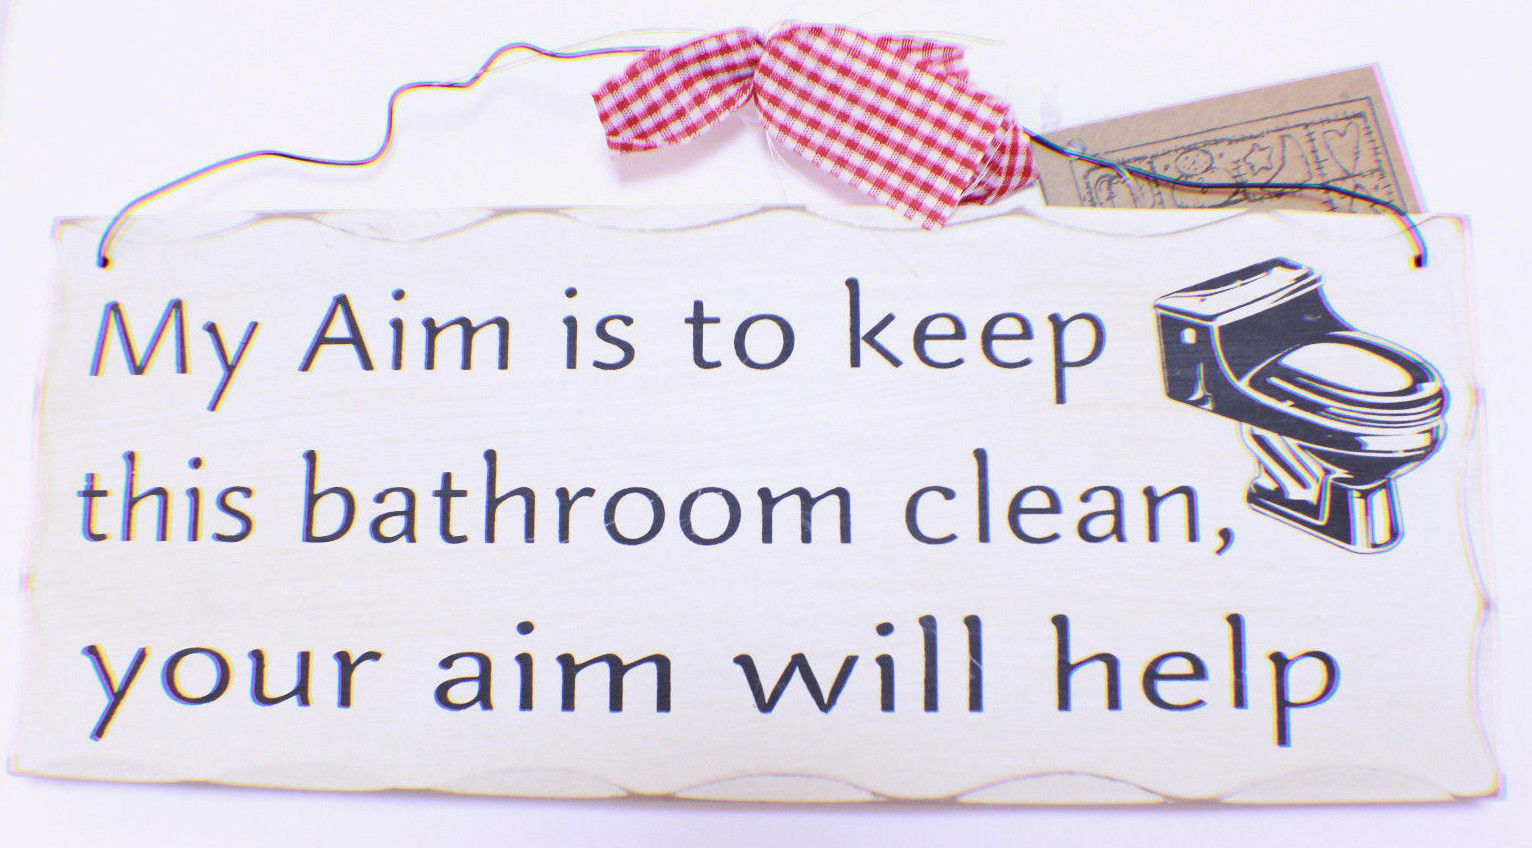 Your Aim Keeping The Bathroom Clean Will Help Wooden Wall Plaque Decor Sign